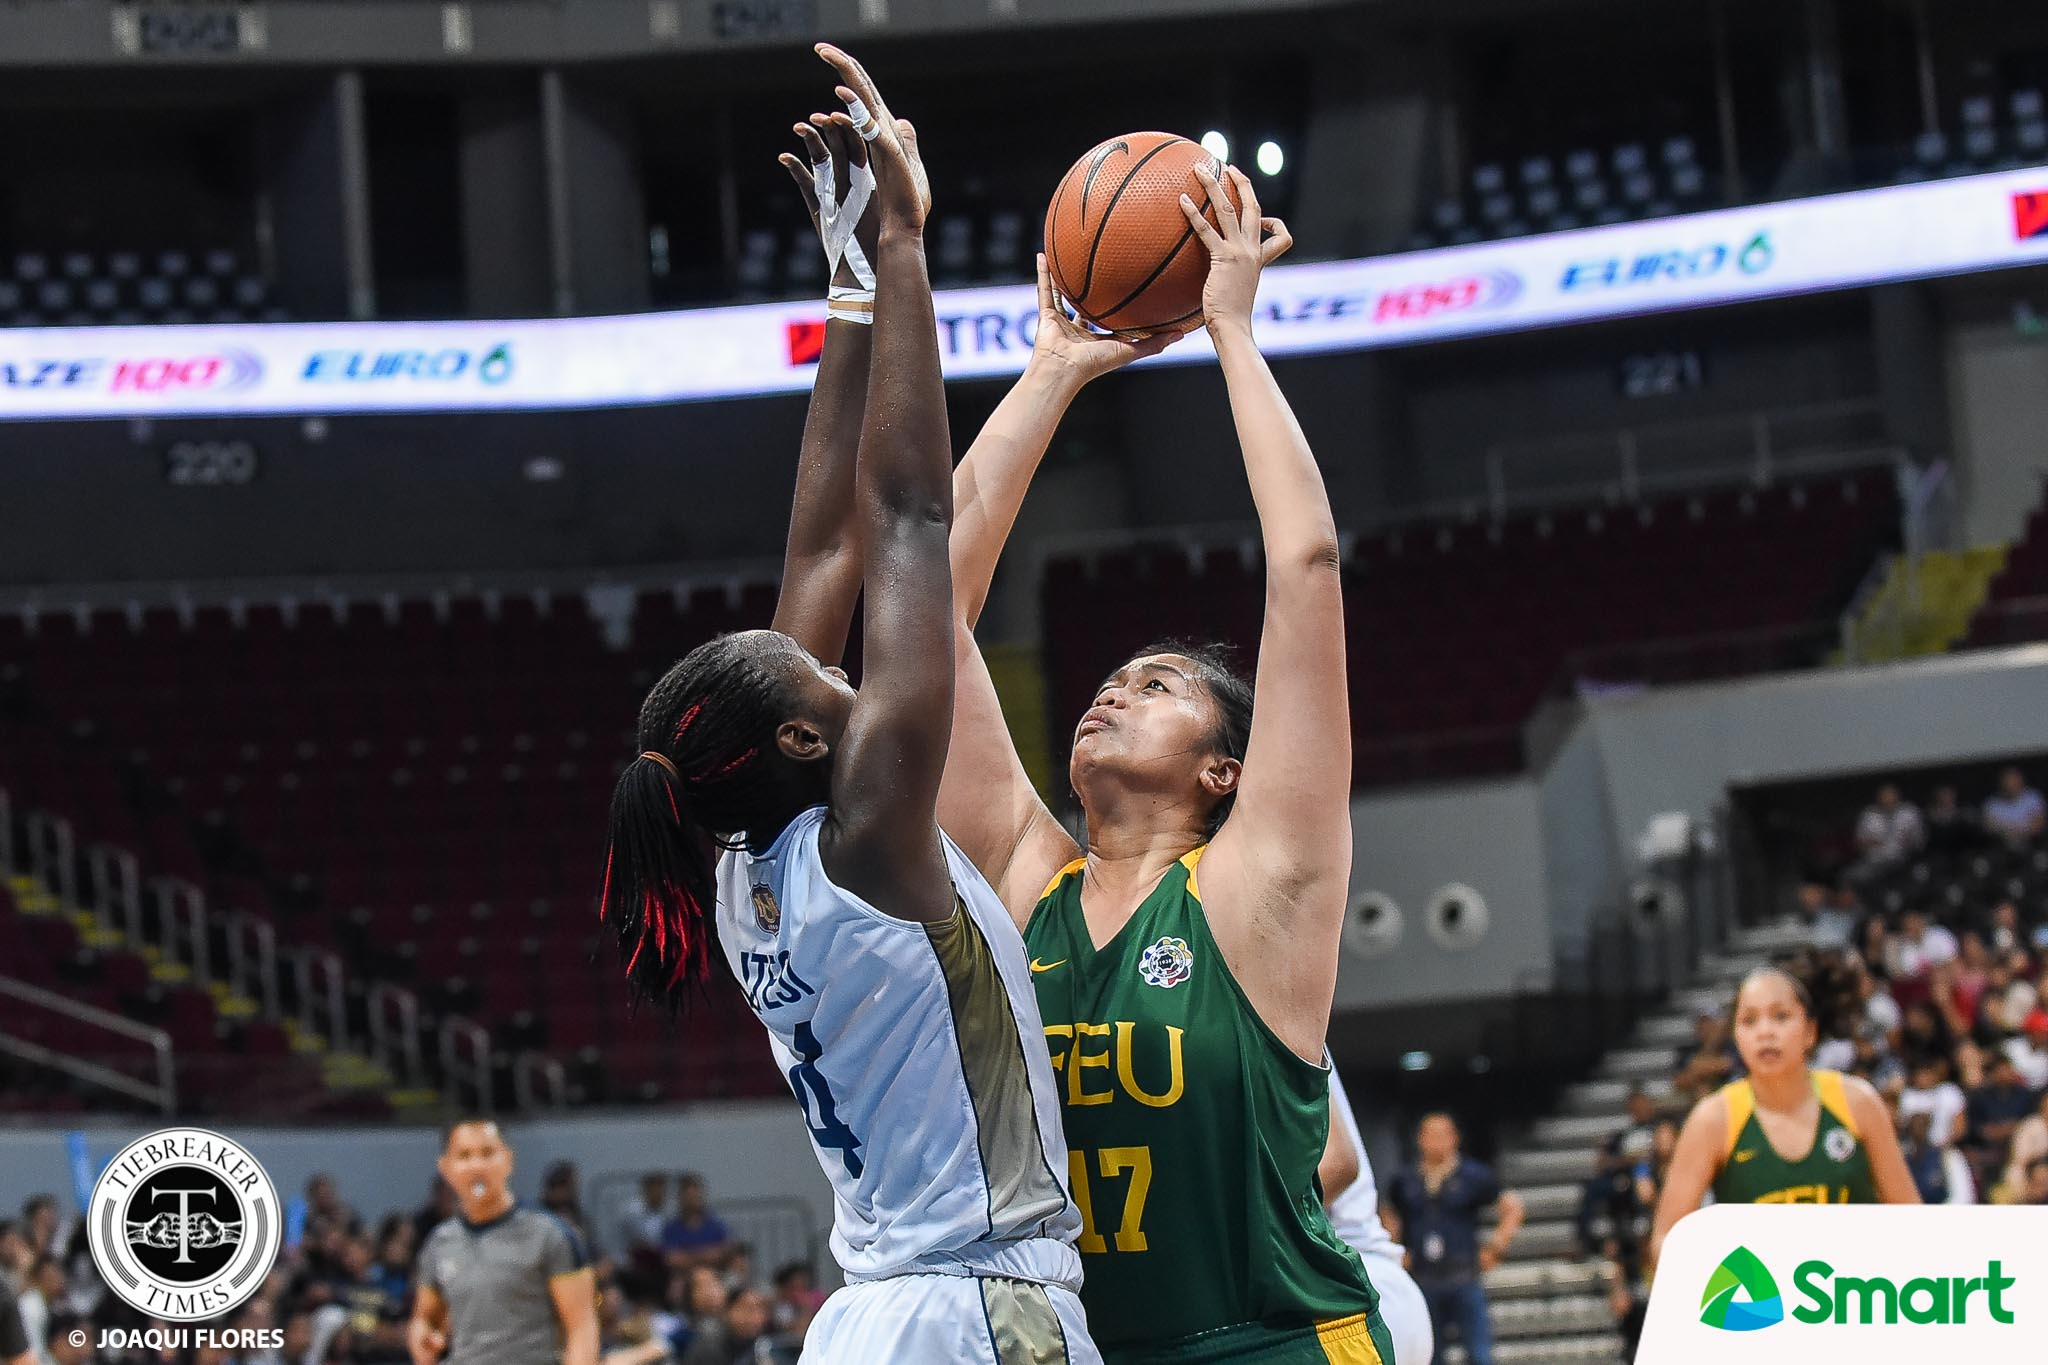 Tiebreaker Times NU's twin towers lock down Castro, lead Lady Bulldogs to Game 1 win Basketball FEU News NU UAAP  UAAP Season 81 Women's Basketball UAAP Season 81 Rhena Itesi Patrick Aquino NU Women's Basketball Jeanne Camelo Jack Animam FEU Women's Basketball Clare Castro Bert Flores